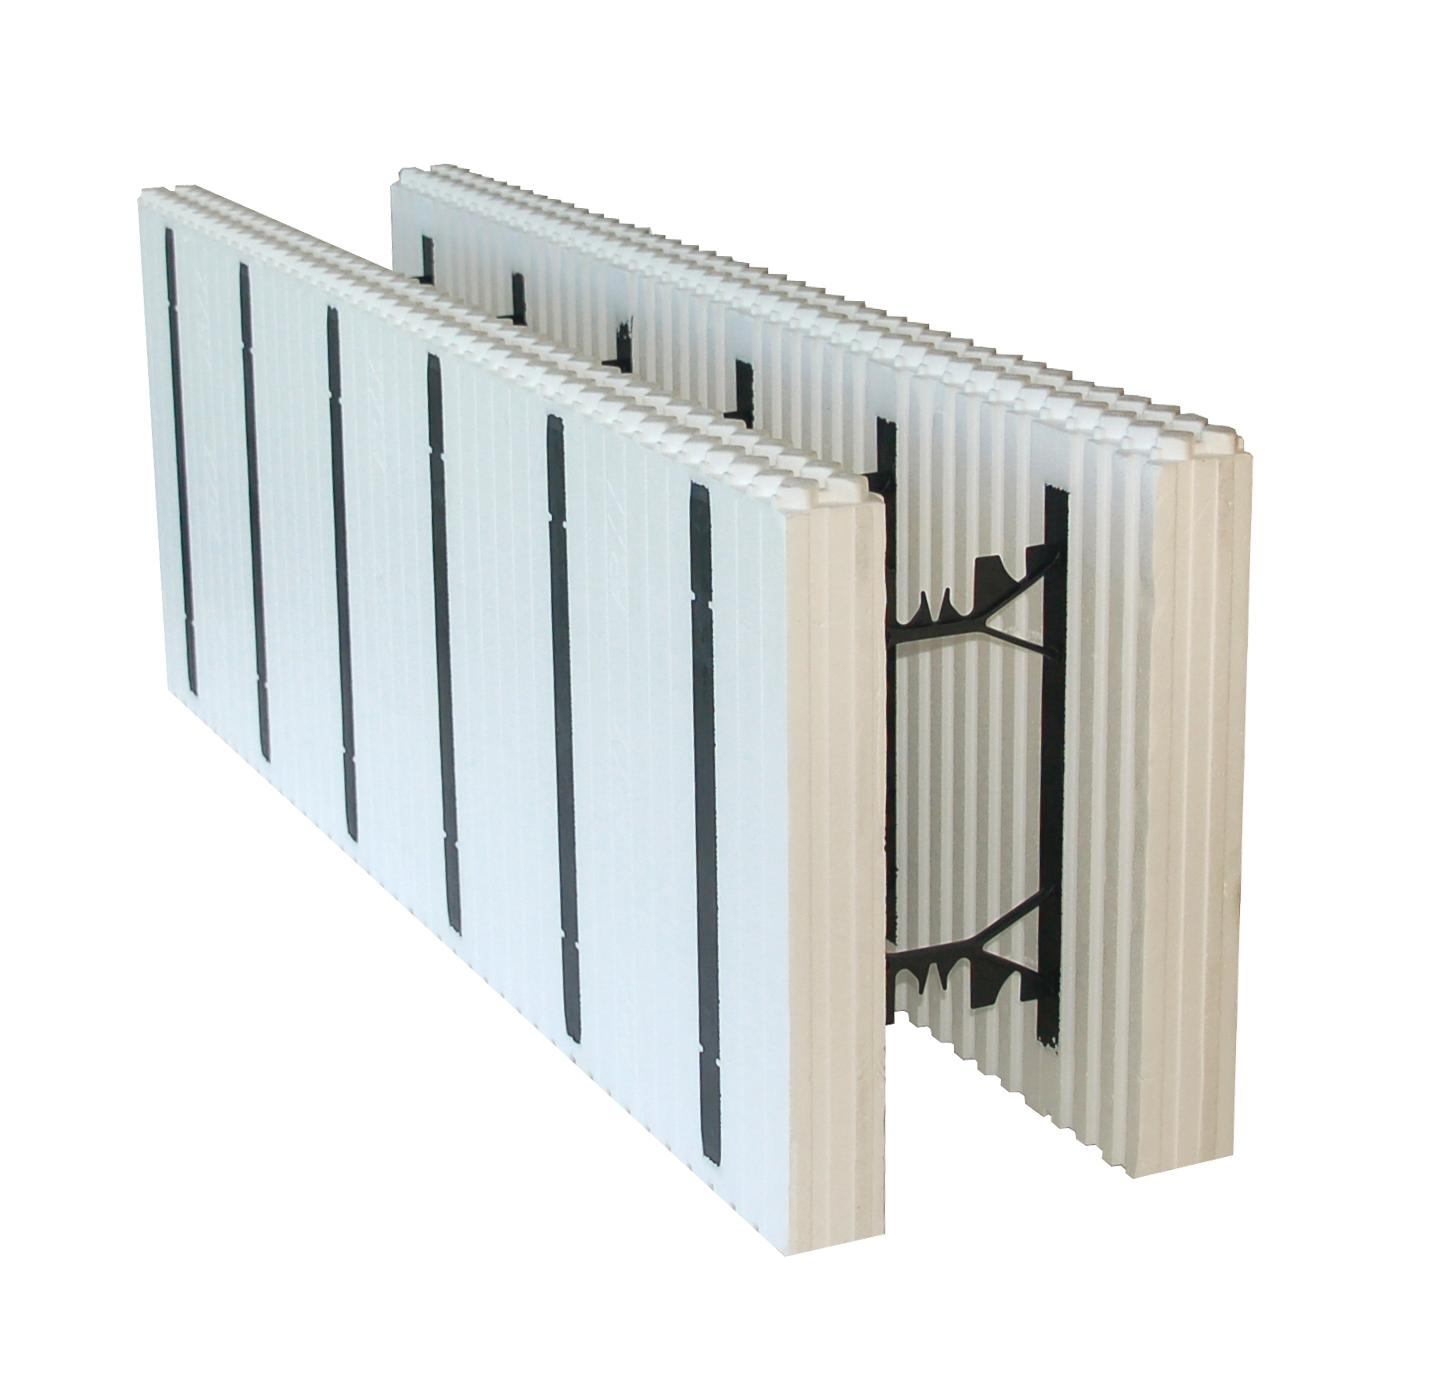 Preassmbled interlocking blocks from arxx ecobuilding for Foam block wall construction